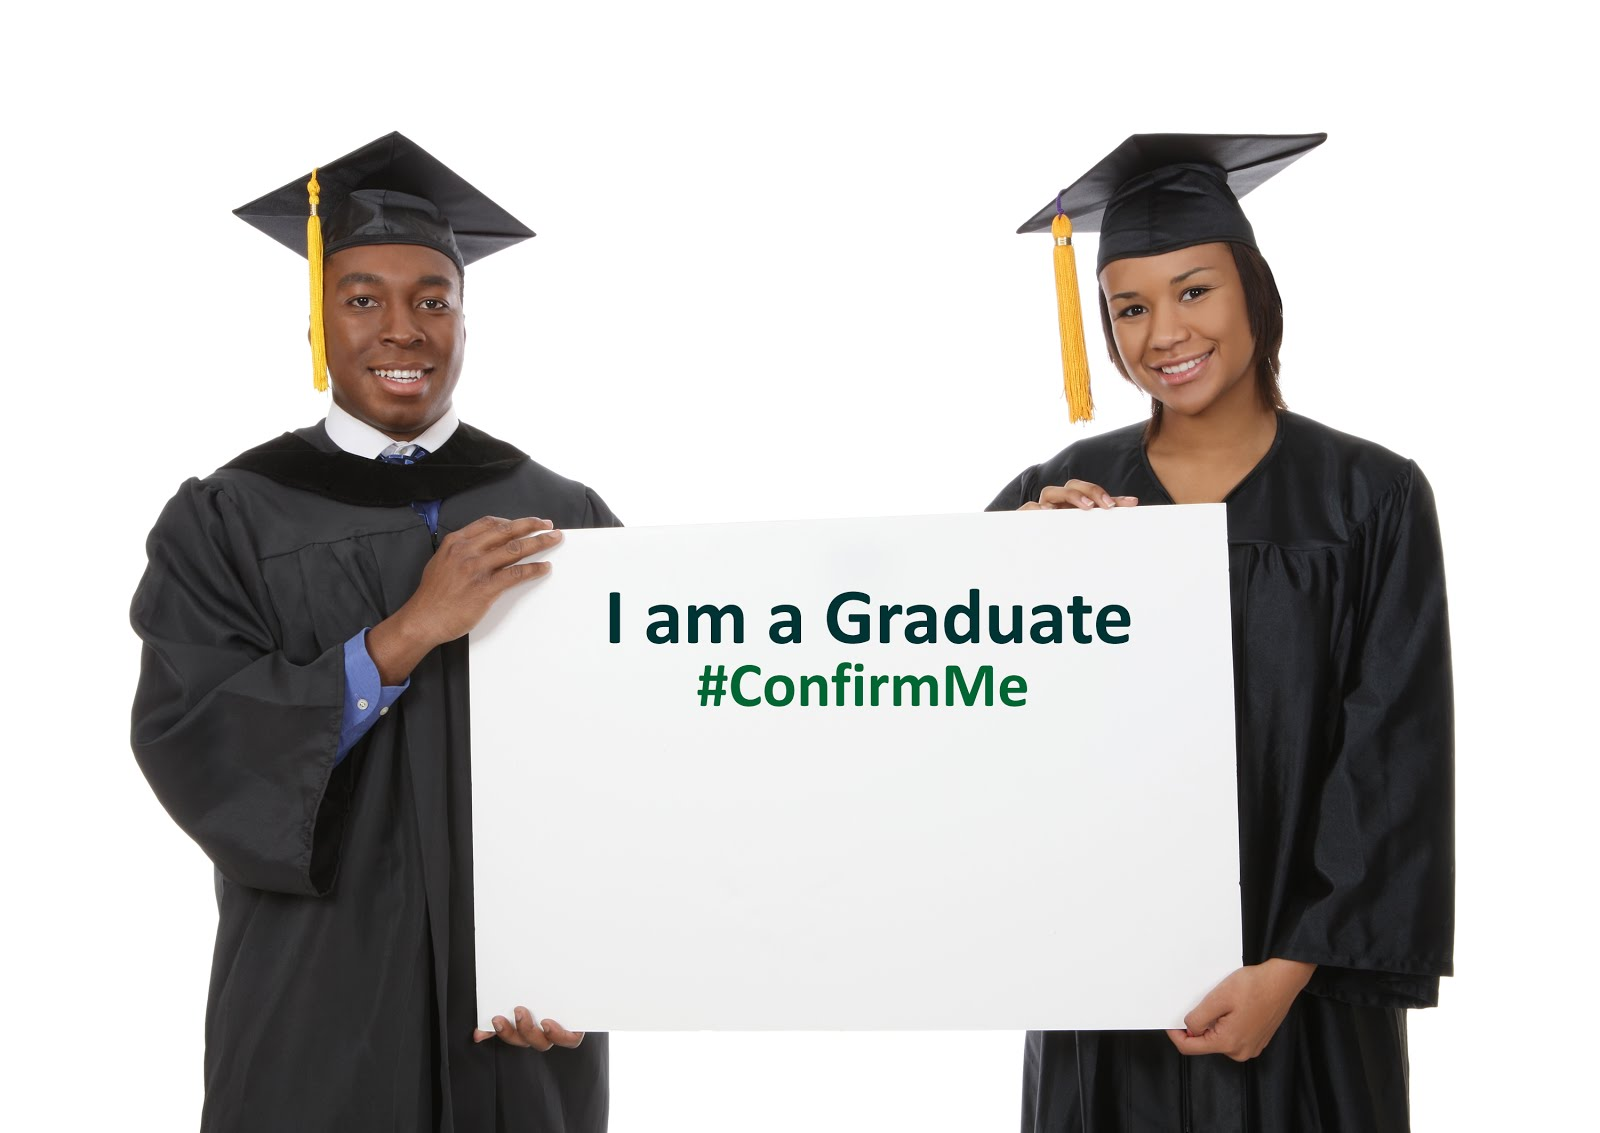 Introducing ConfirmMe; Nigeria's first online real-time verification service